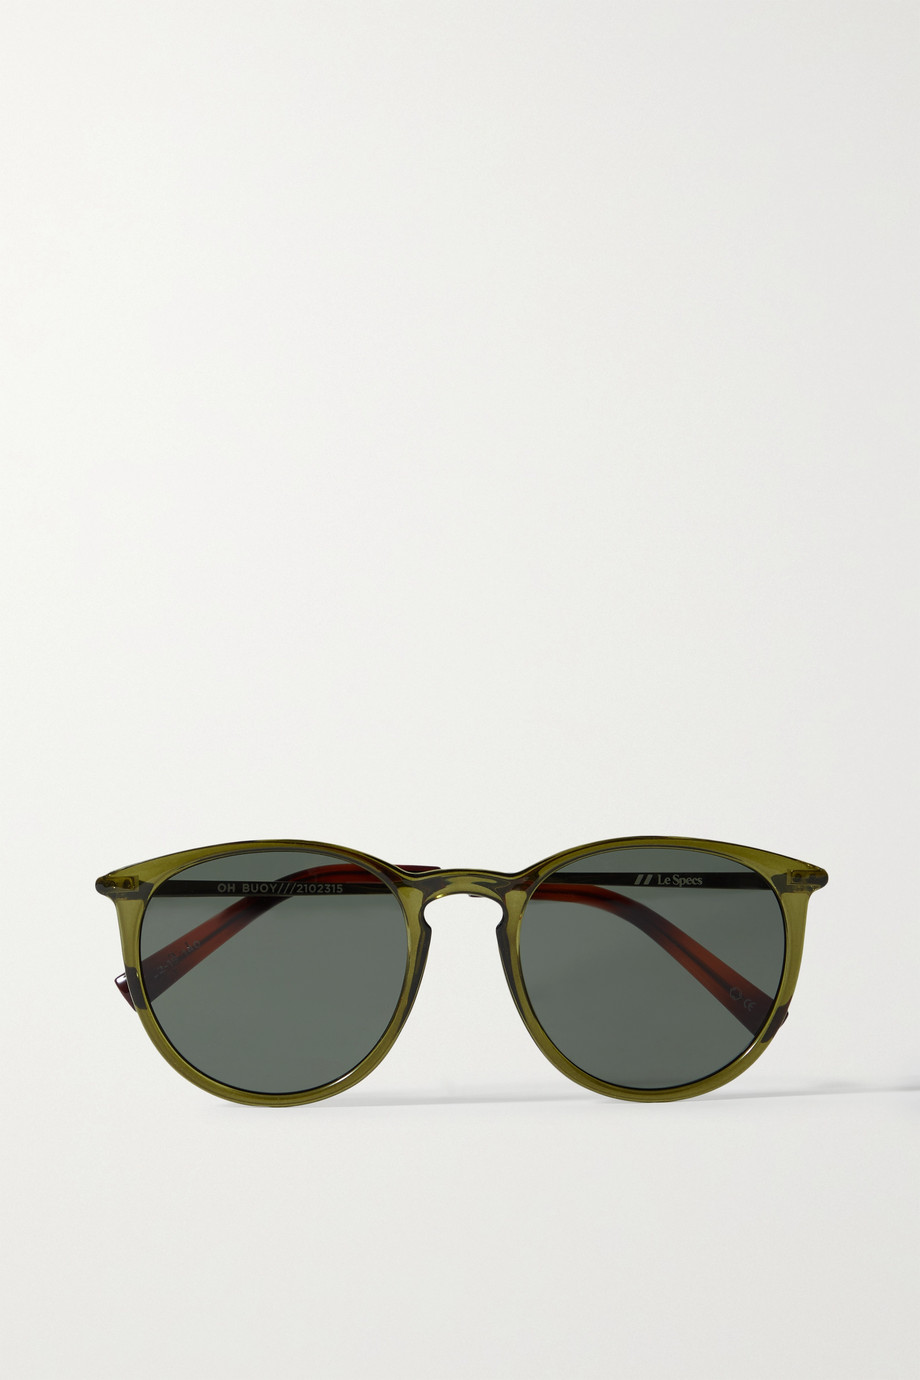 Le Specs Oh Bouy round-frame acetate sunglasses